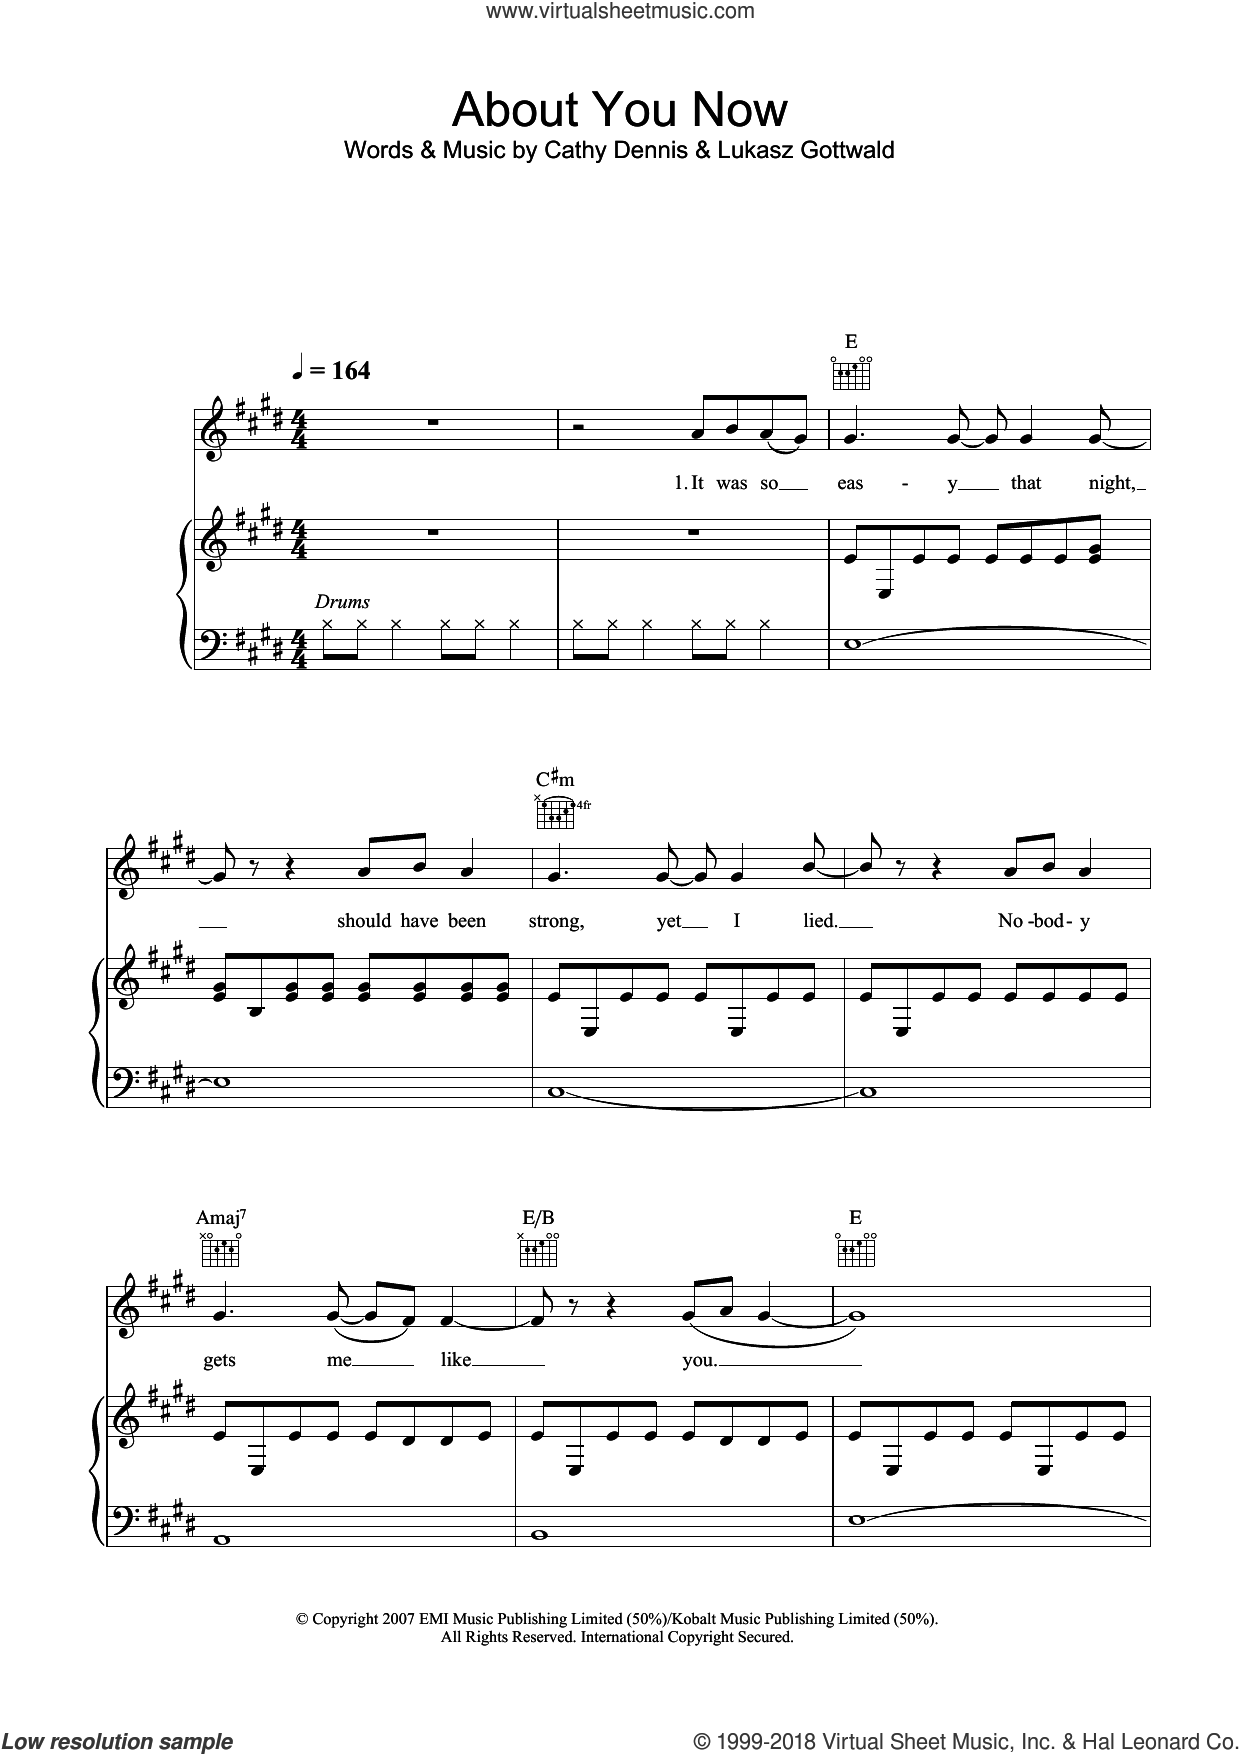 About You Now sheet music for voice, piano or guitar by Cathy Dennis